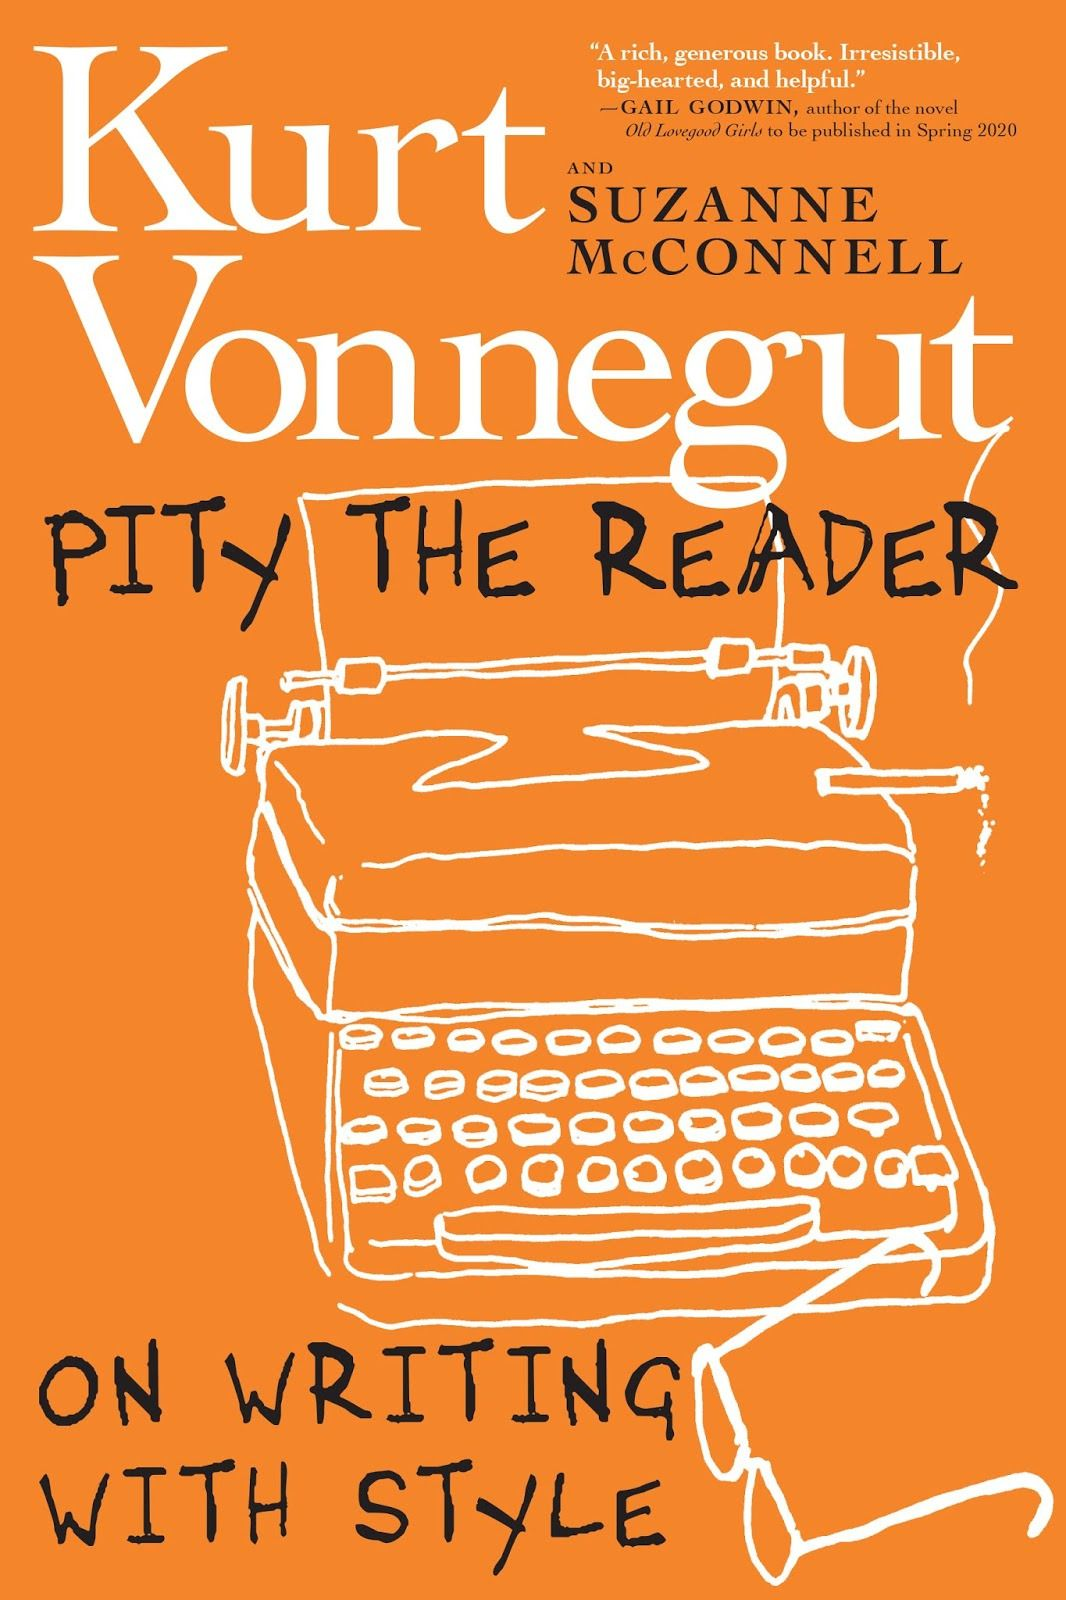 Pity The Reader On Writing With Style Walmart Com In 2020 Kurt Vonnegut Book To Read Readers Essays